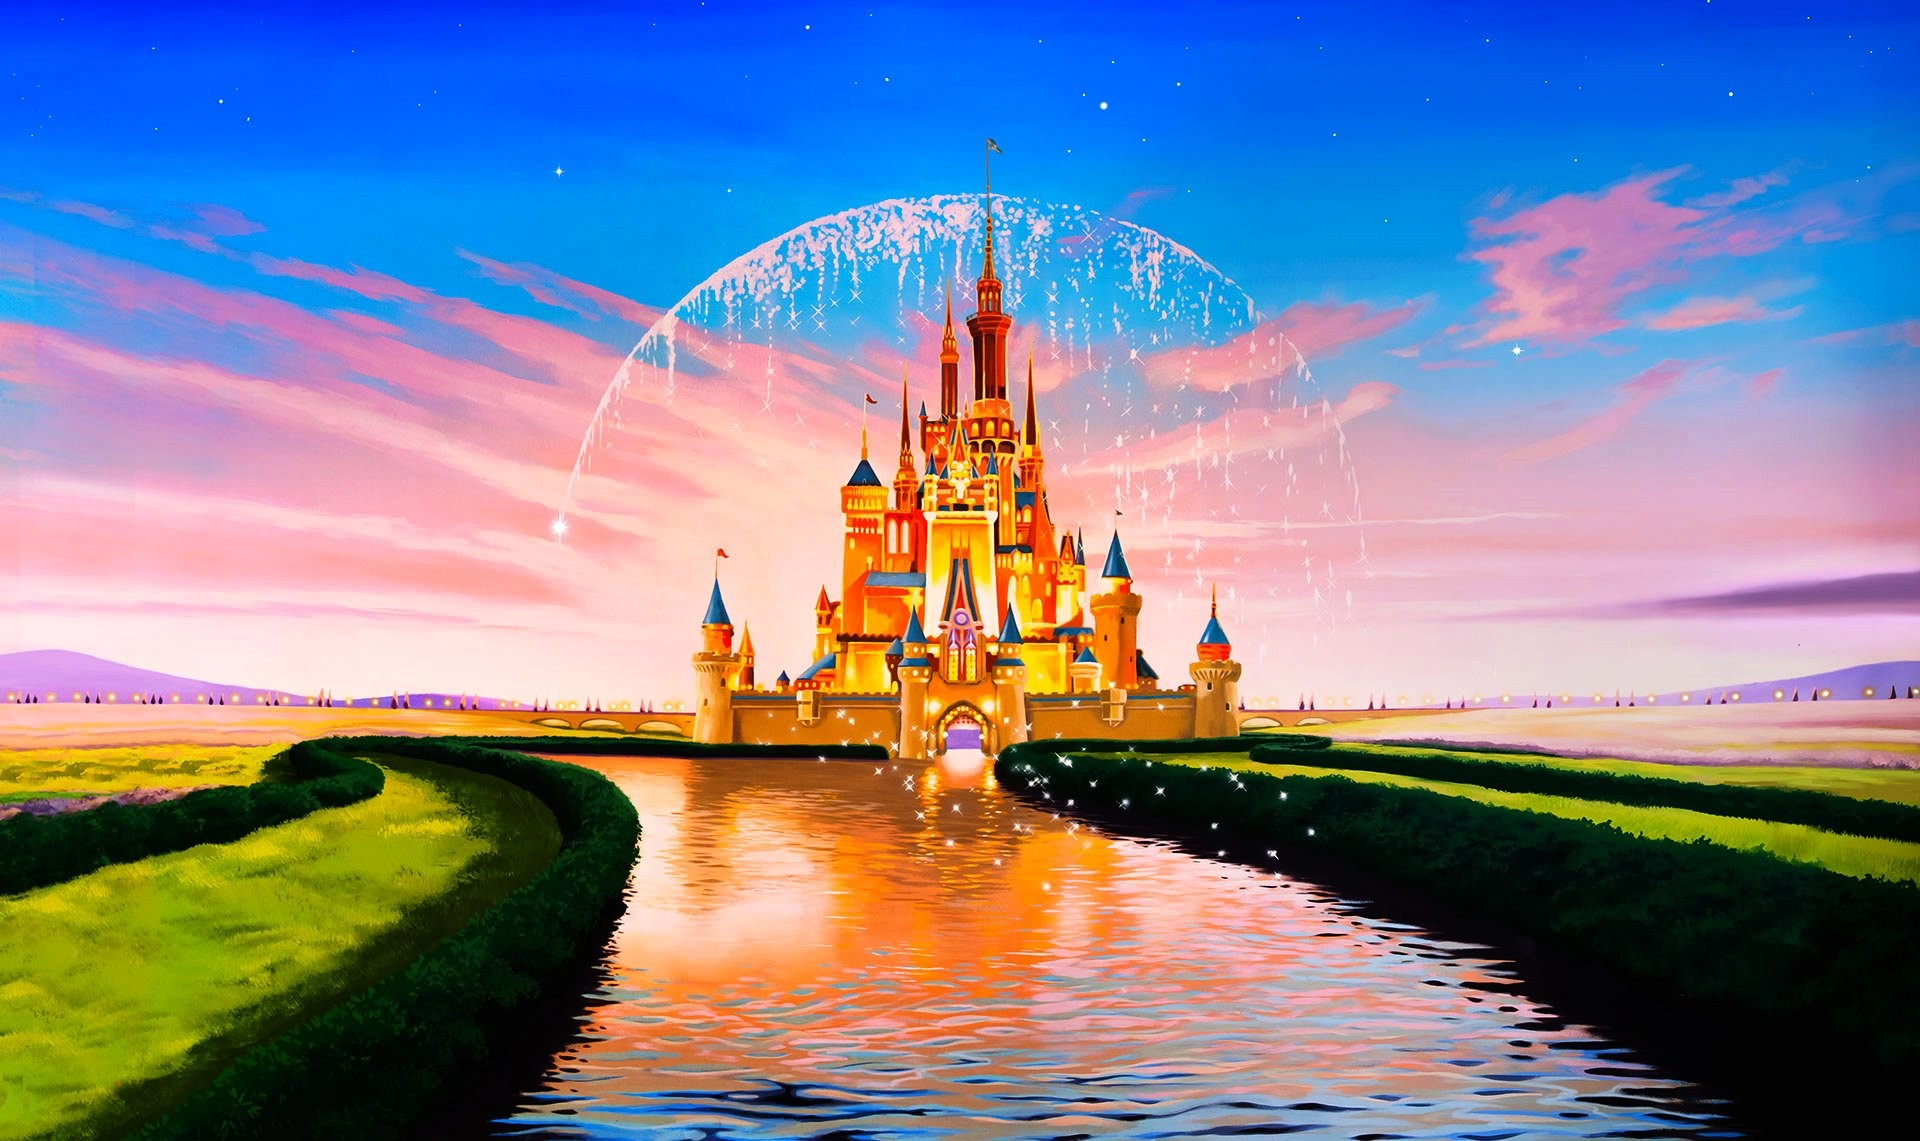 Disney castle wallpaper hd 72 images 1920x1200 free castles disney wallpaper resolution 1920 x tags castles disney magical voltagebd Choice Image